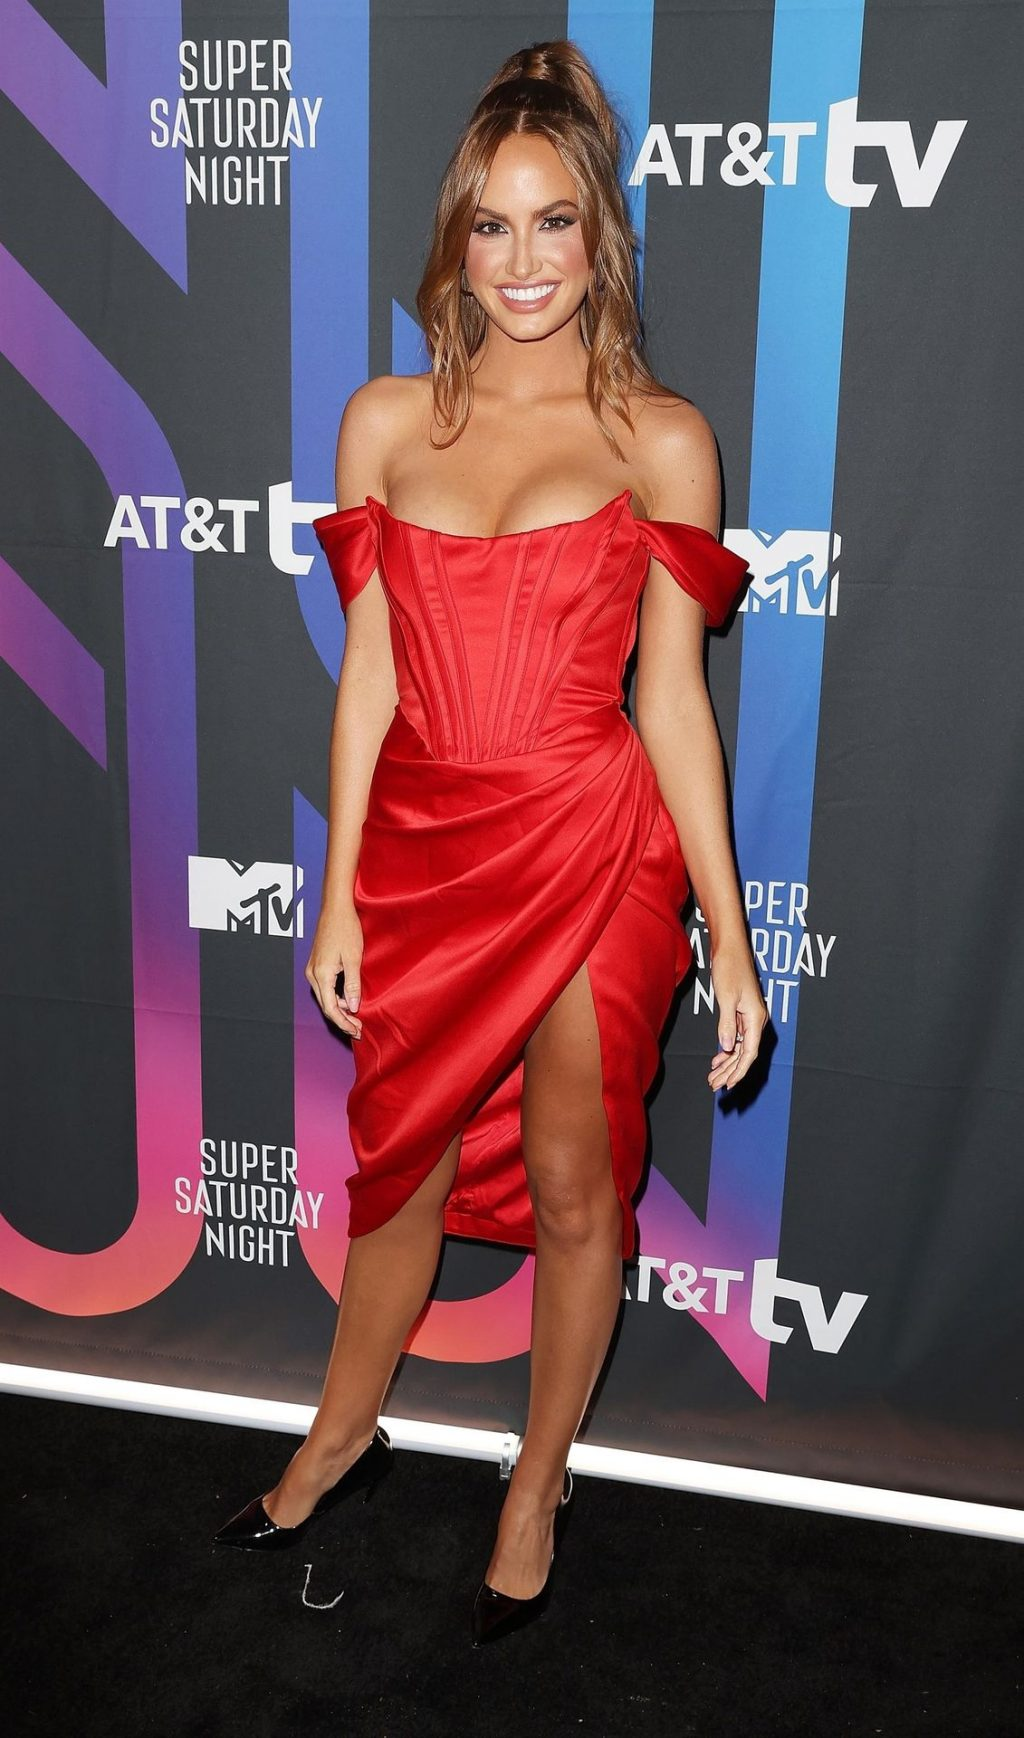 Sexy Model Haley Kalil Poses in a Red Dress at the AT&T Super Saturday Night Concert (15 Photos)